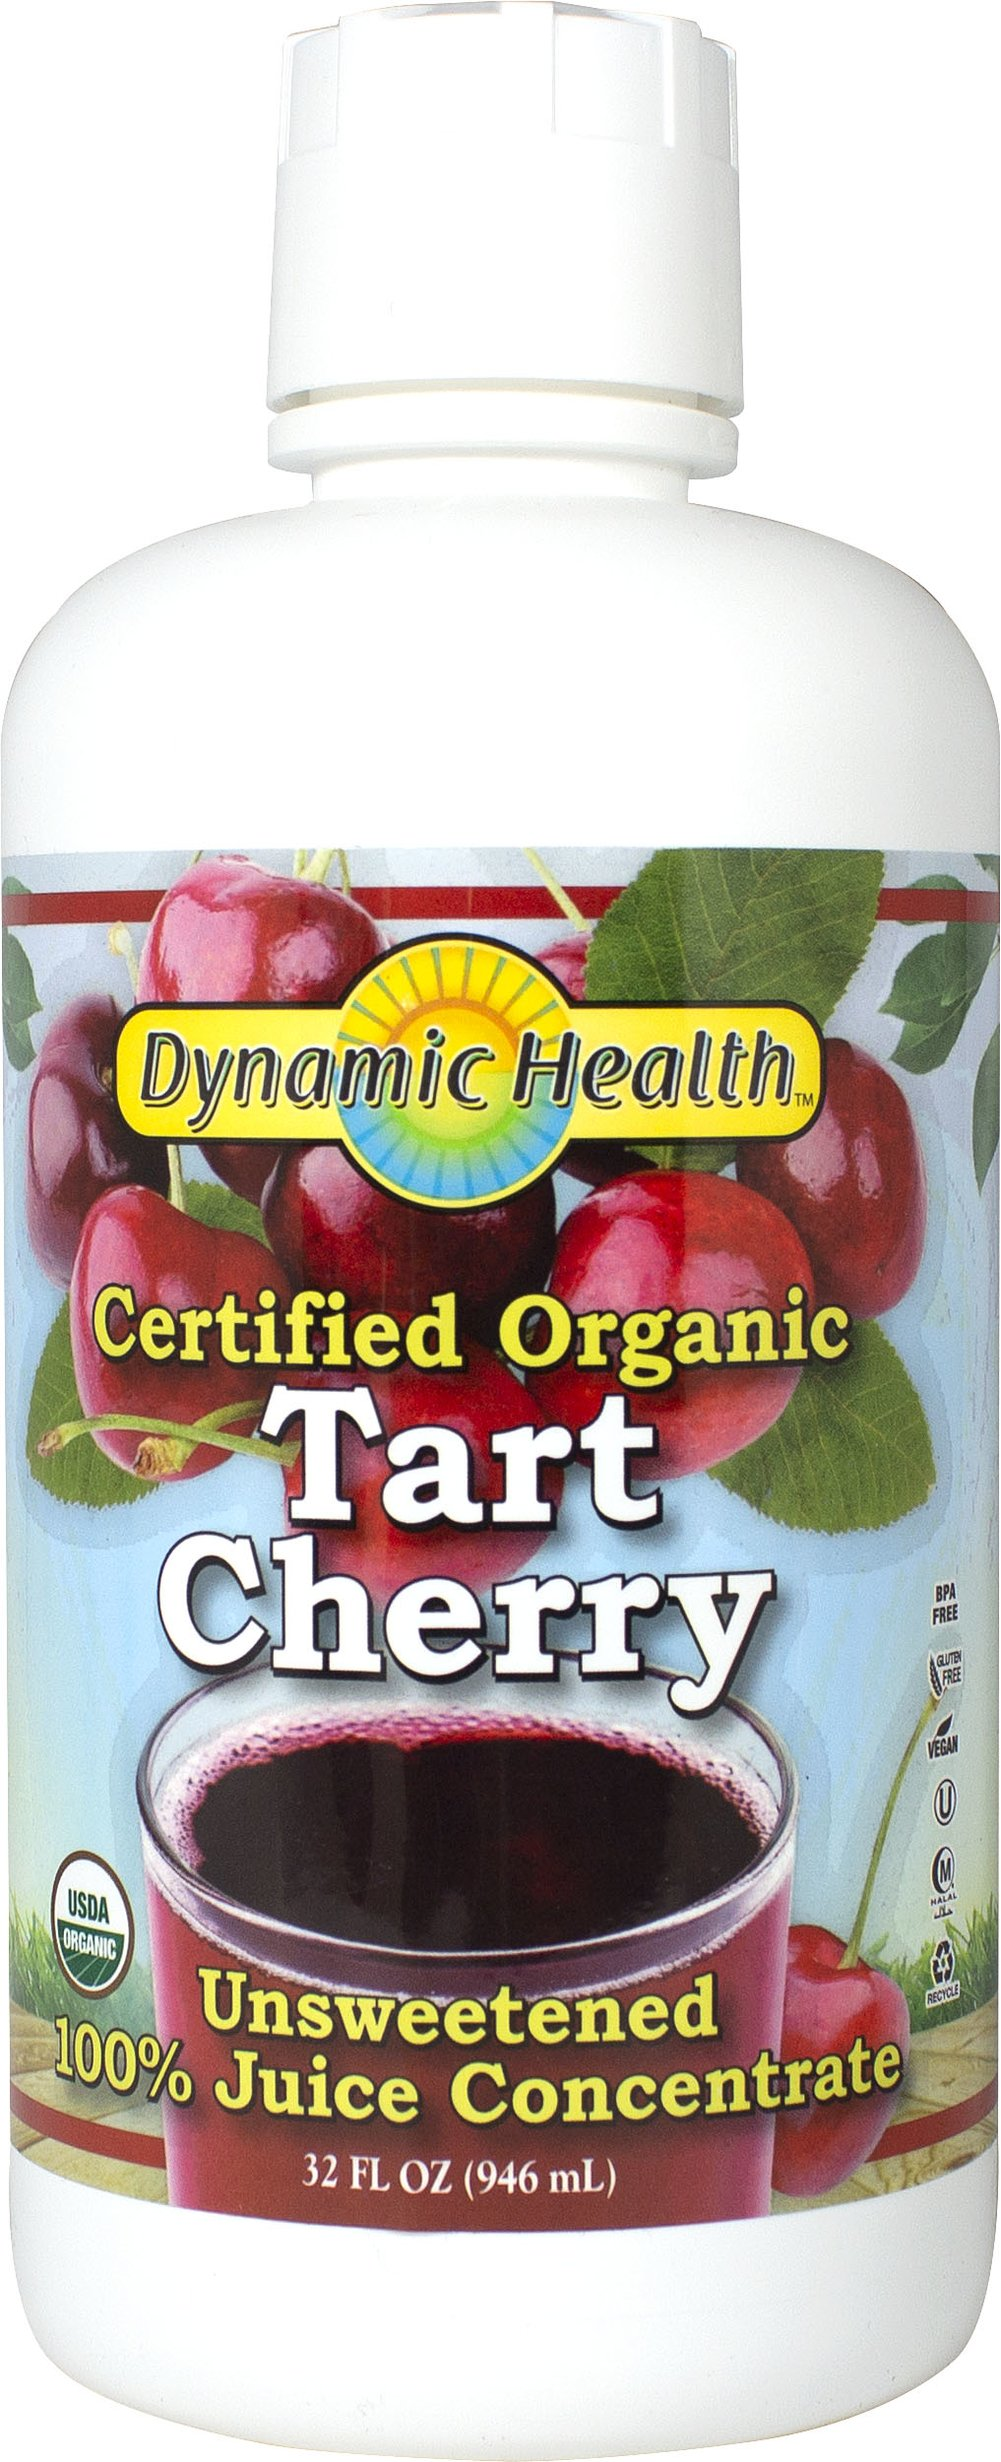 Organic Tart Cherry Juice Concentrate <p>From the Manufacturer's Label:<br /></p><ul><li>Organic</li><li>Fat Free</li><li>No Sugar Added</li><li>Gluten Free</li><li>Vegetarian</li></ul><p>Tart cherries contain a nutritional goldmine of phenolics, which are naturally occurring plant compounds that have anti-inflammatory and antioxidative properties. The main type of phenolic in cherries are anthocy